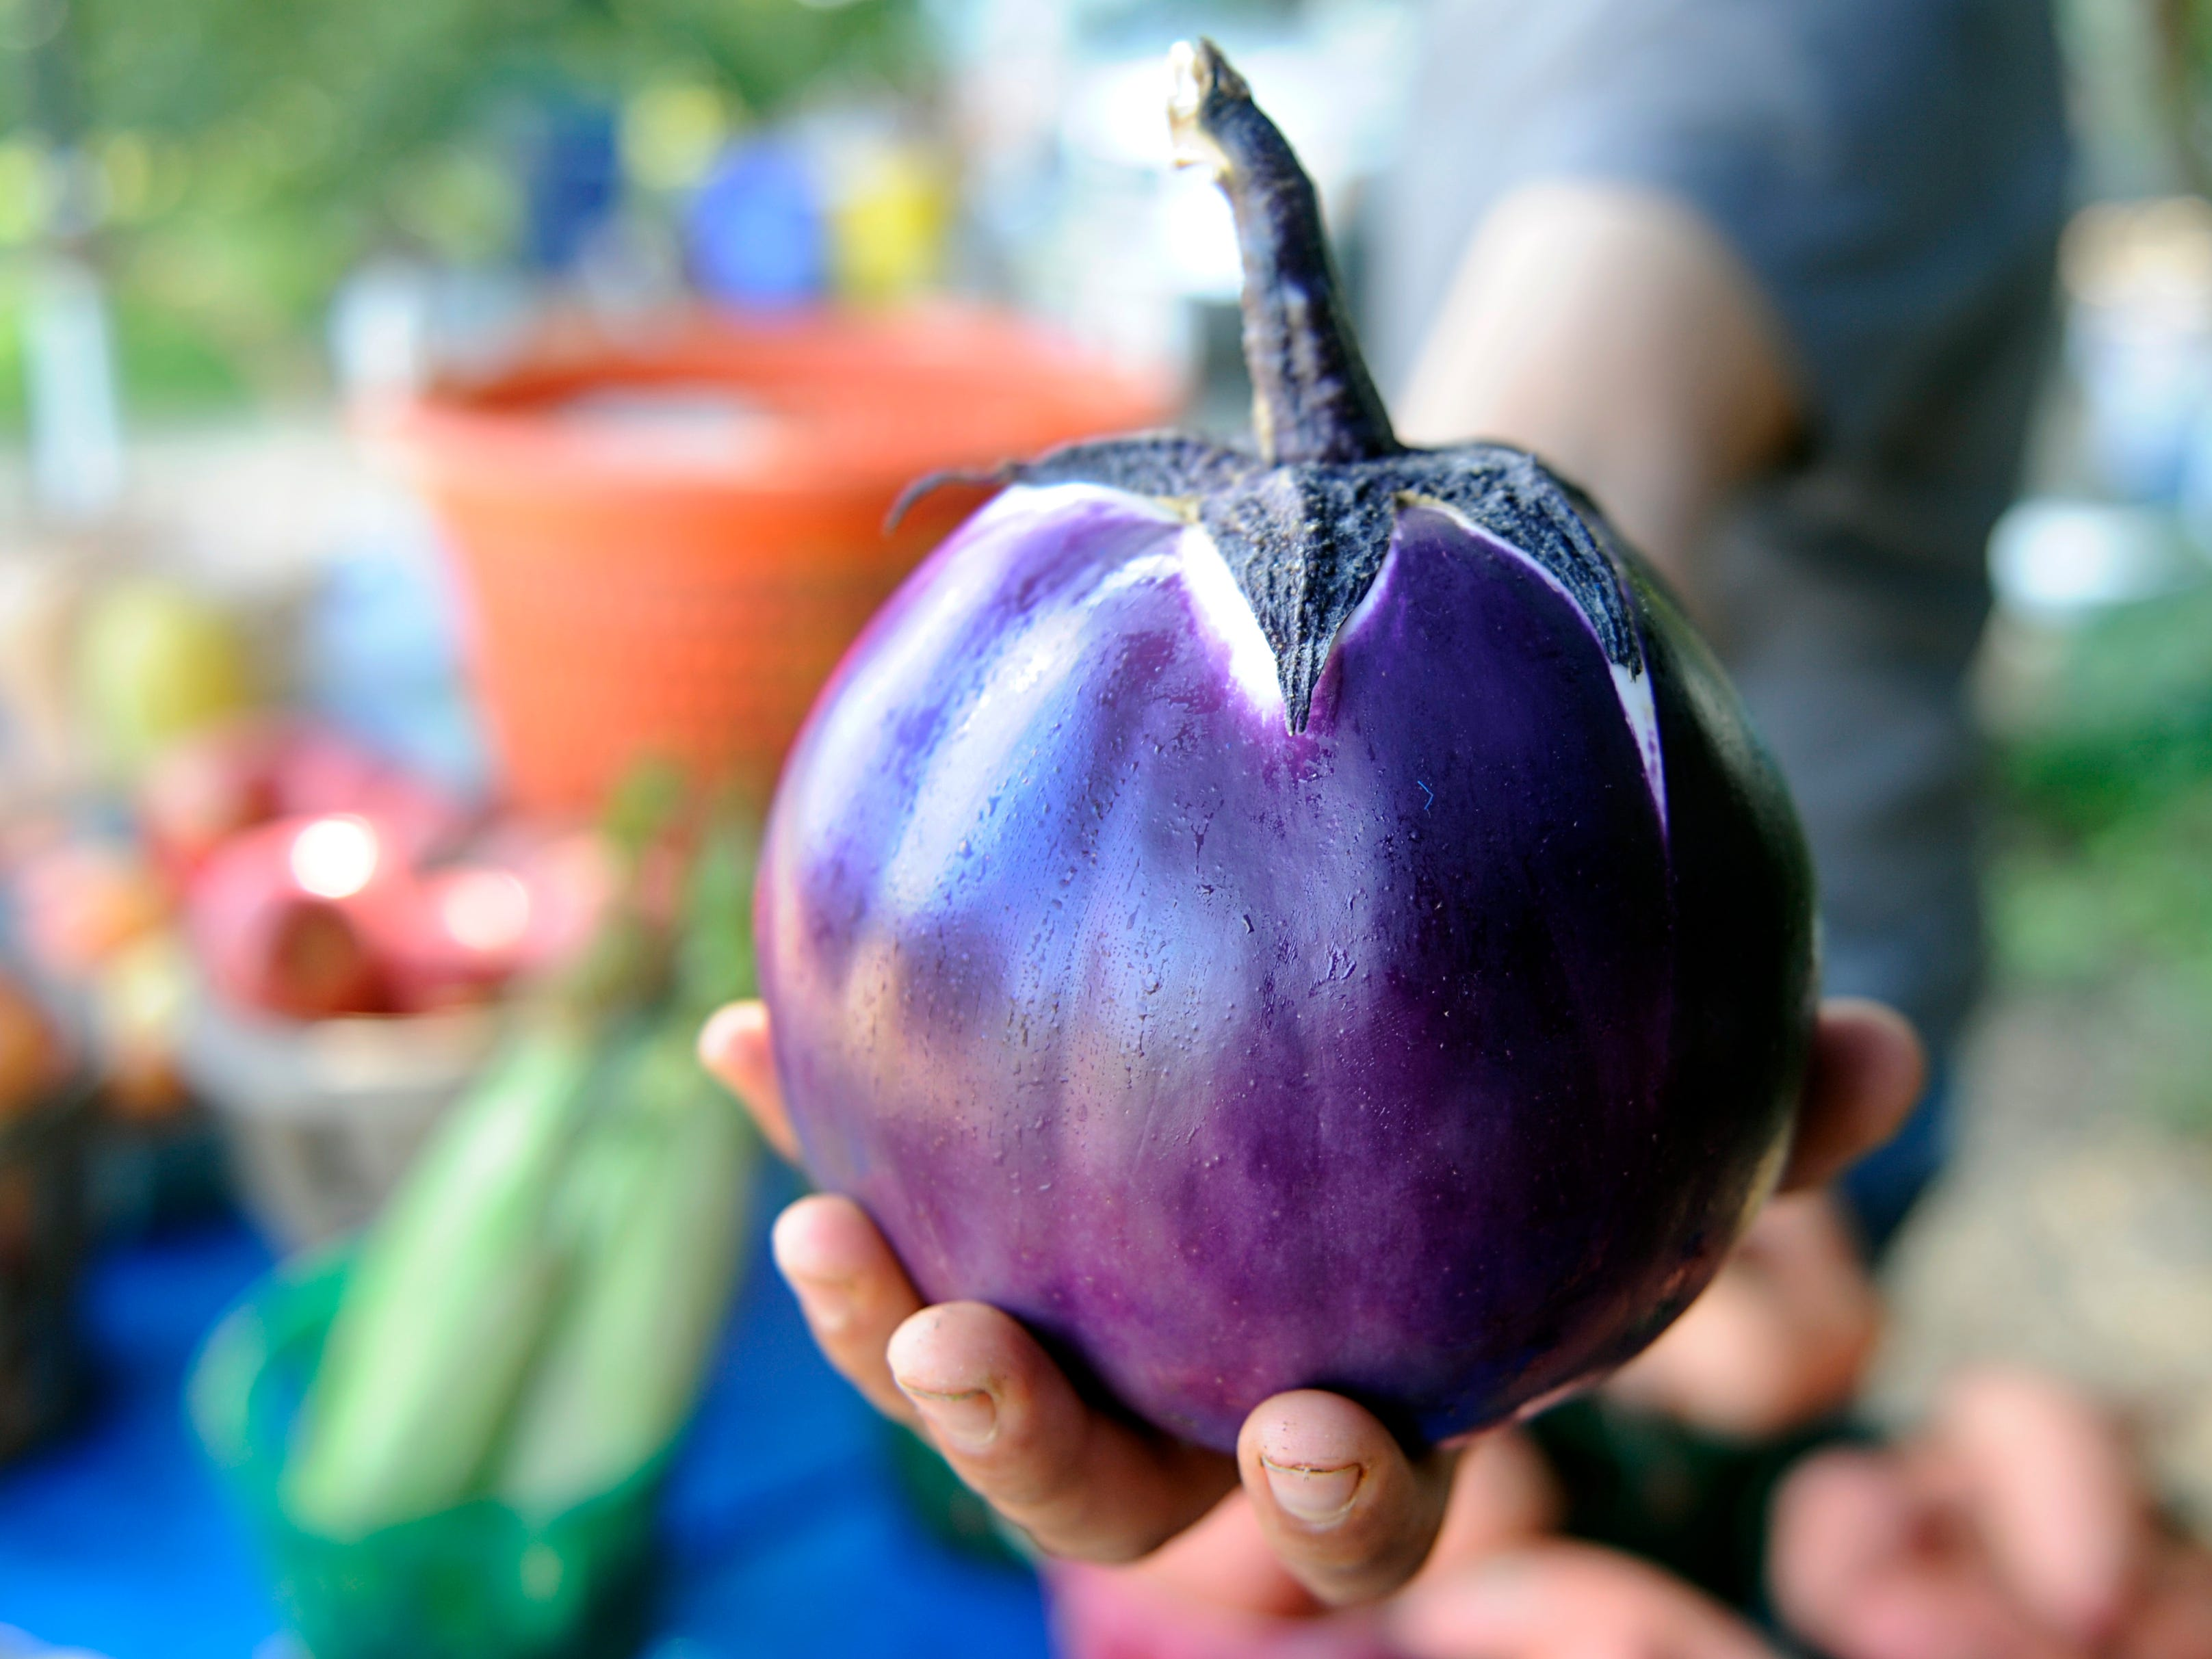 Farmer Dennis Santaniello, co-owner of Santaniello Farms on Oak Road in Vineland, holds a Sicilian eggplant that he sells at his roadside farm market.